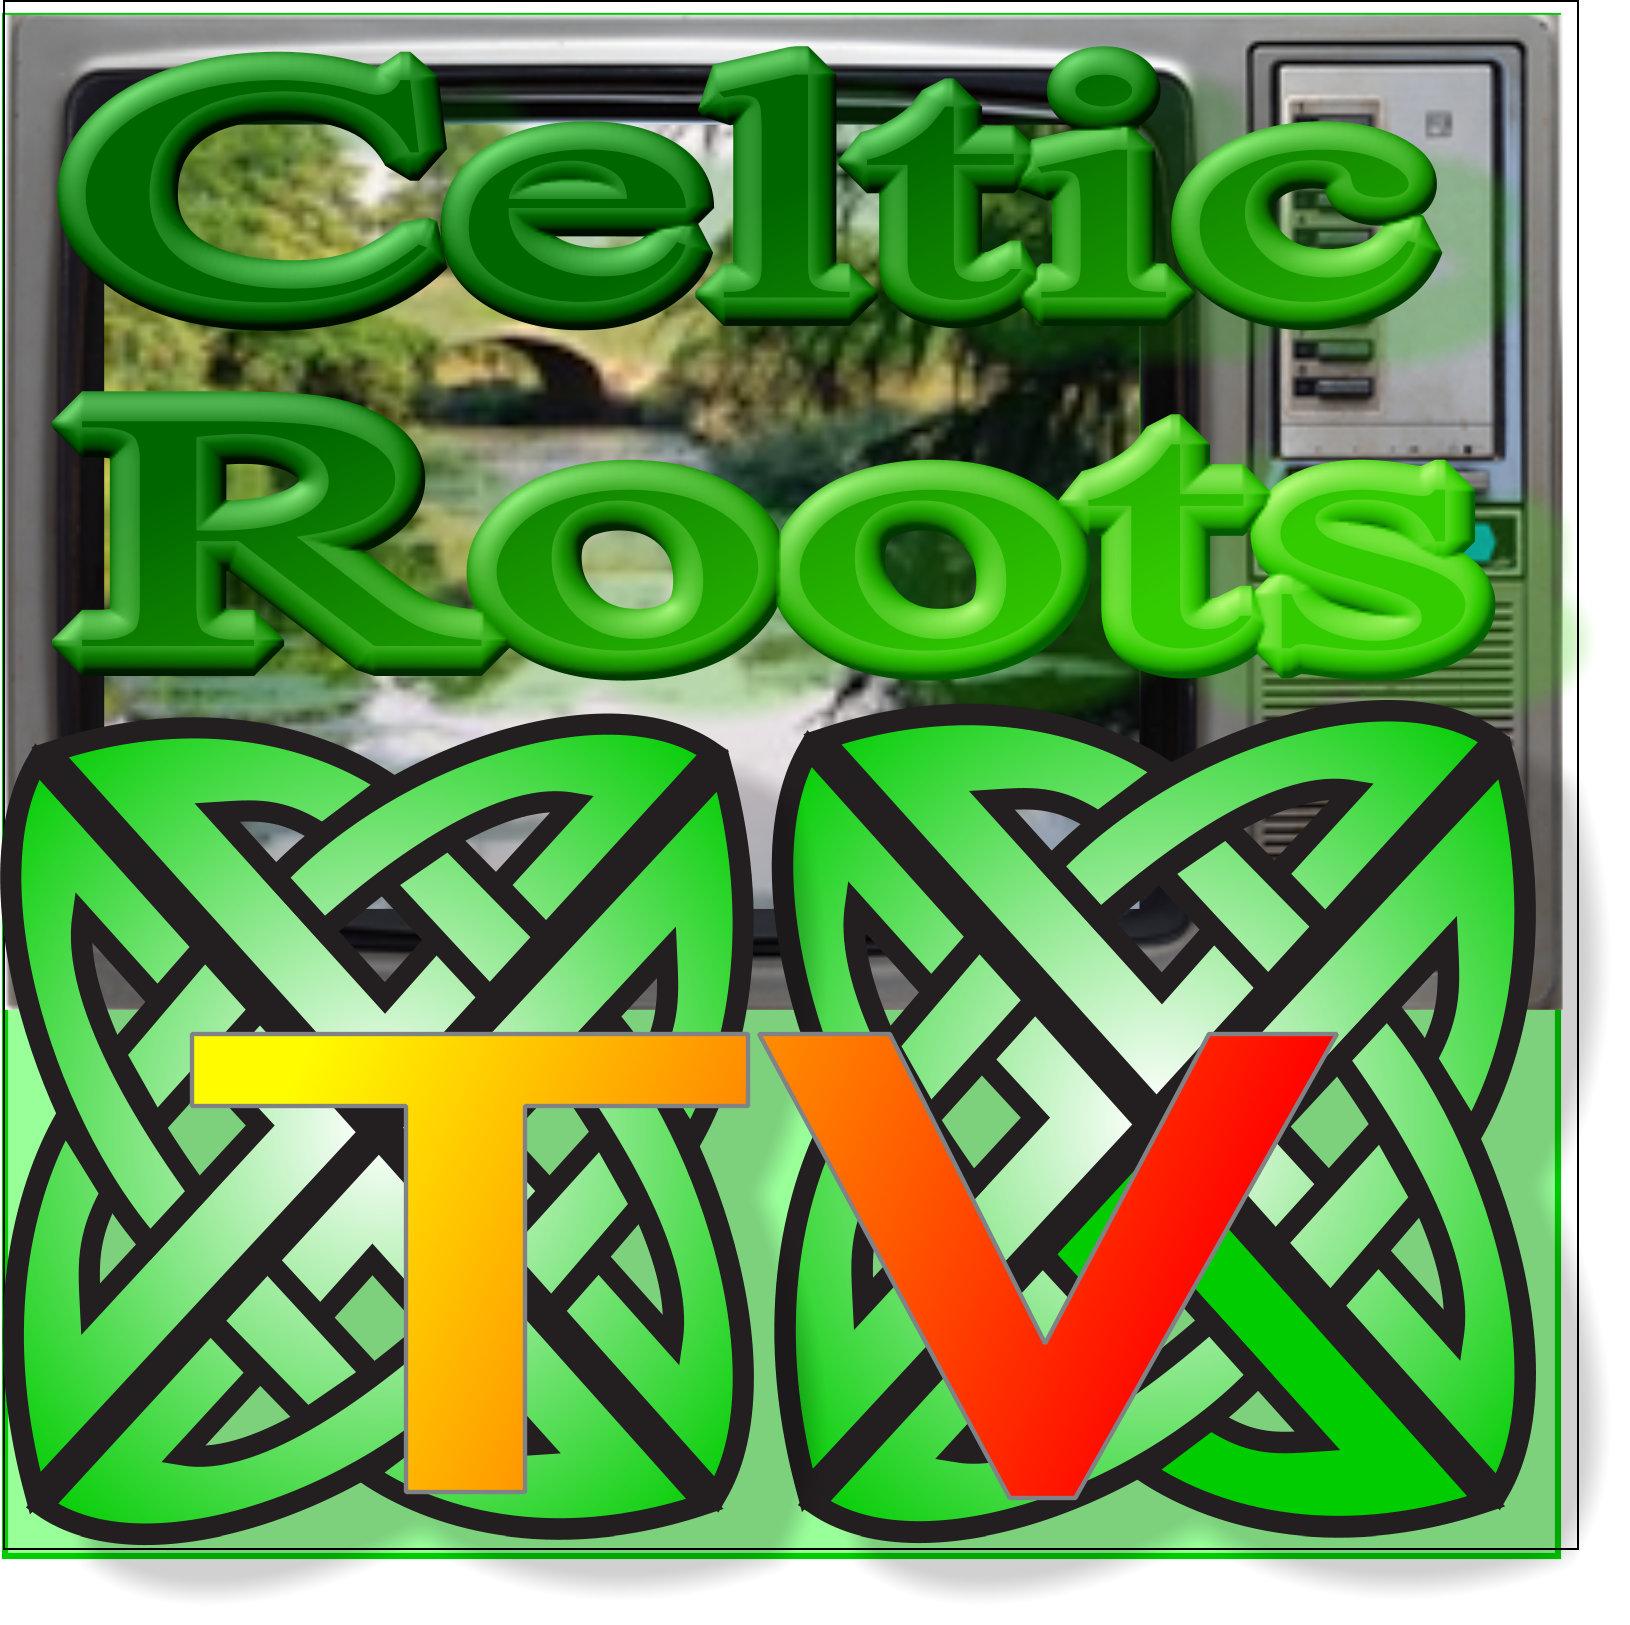 Celtic Roots Radio – Online Submissions via Sonicbids